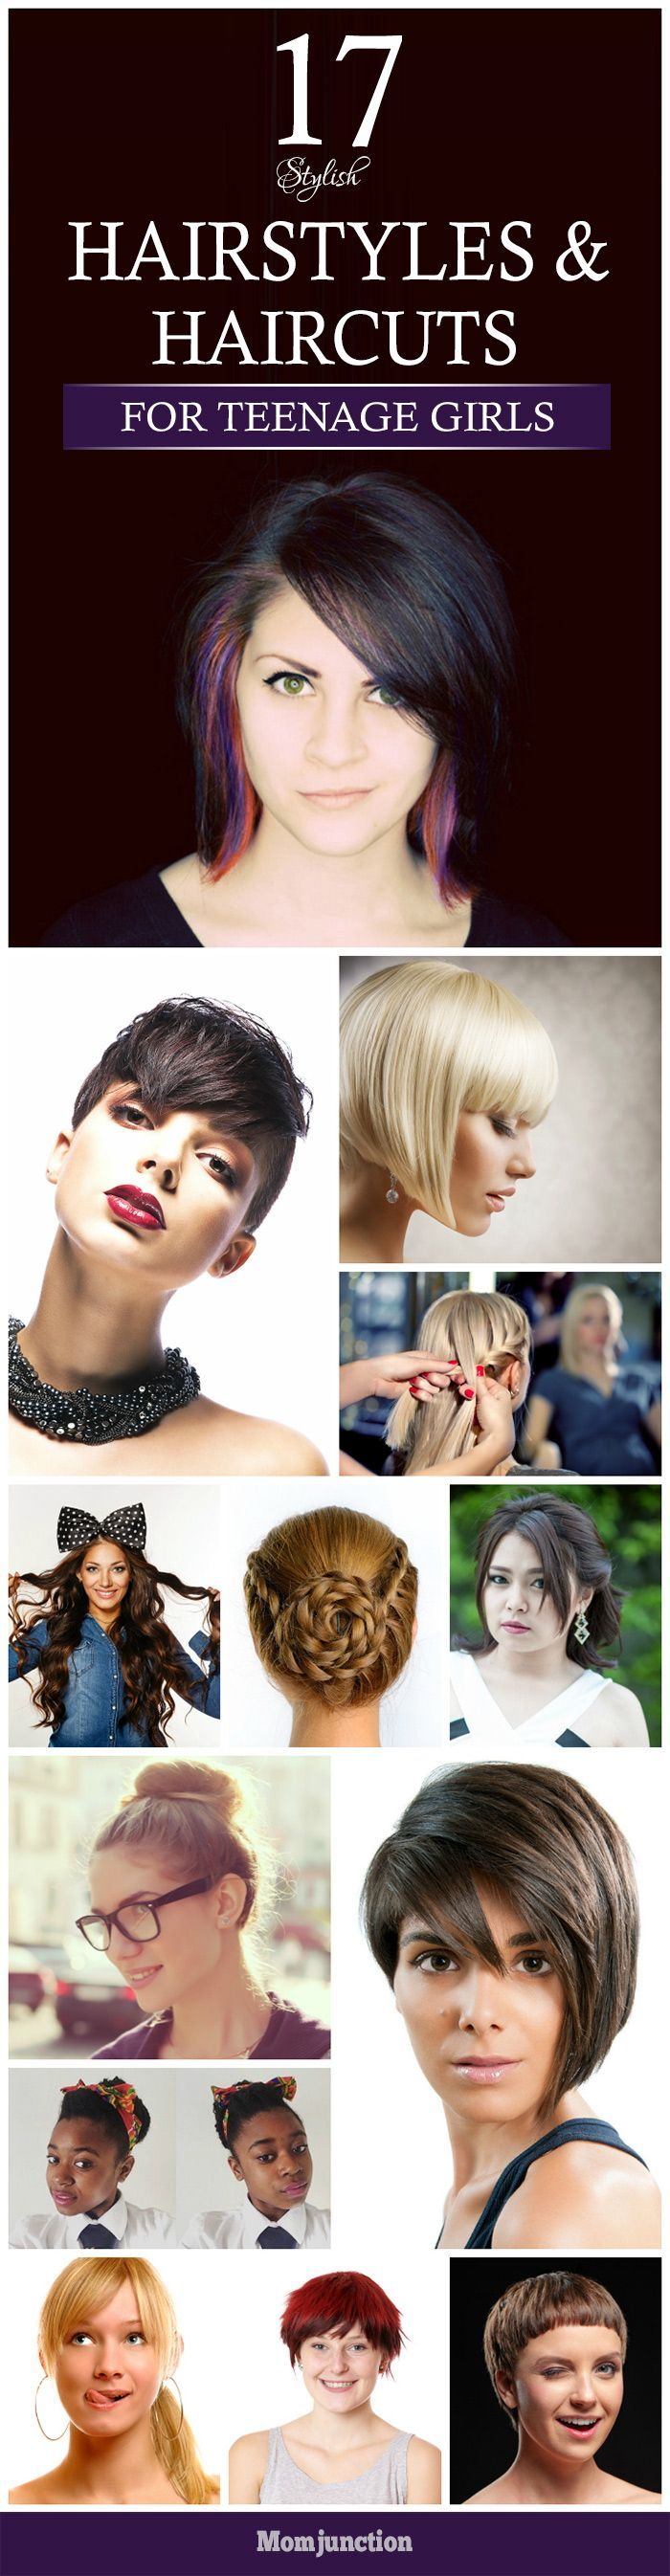 awesome 17 Stylish Hairstyles And Haircuts For Teenage Girls